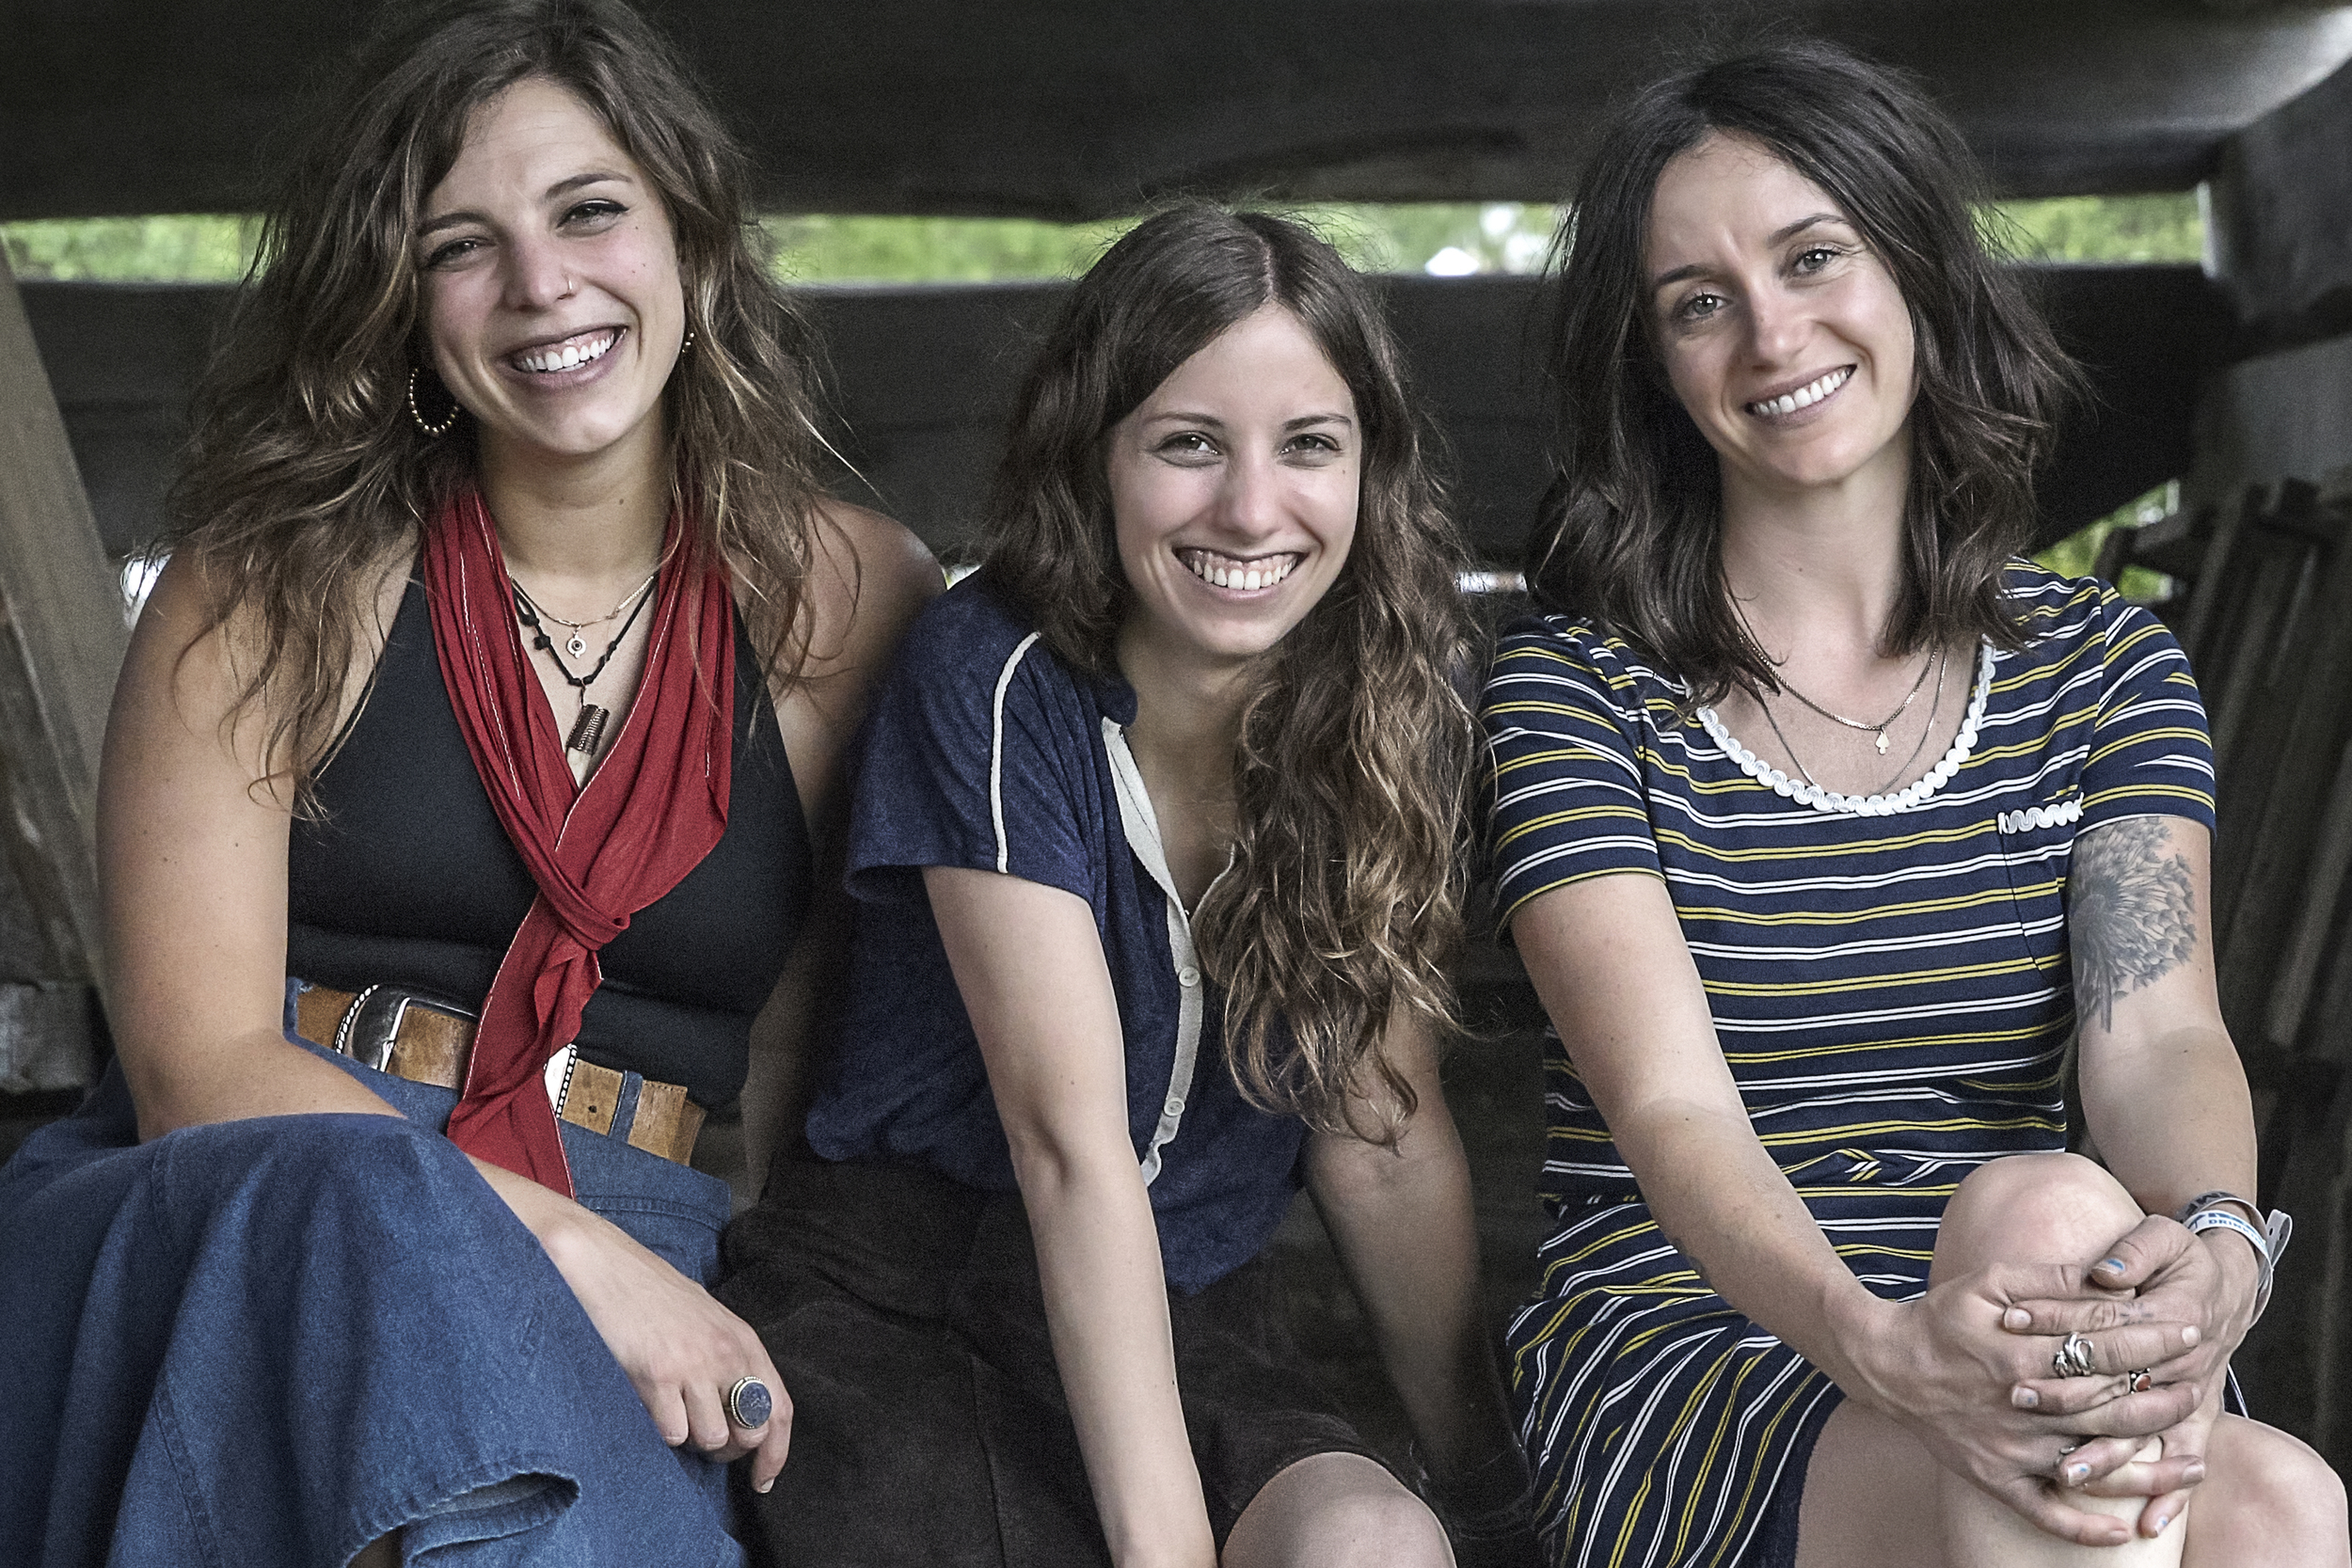 (From Left) Kinsey, Sharon, and Mackenzie of the Wild Reeds